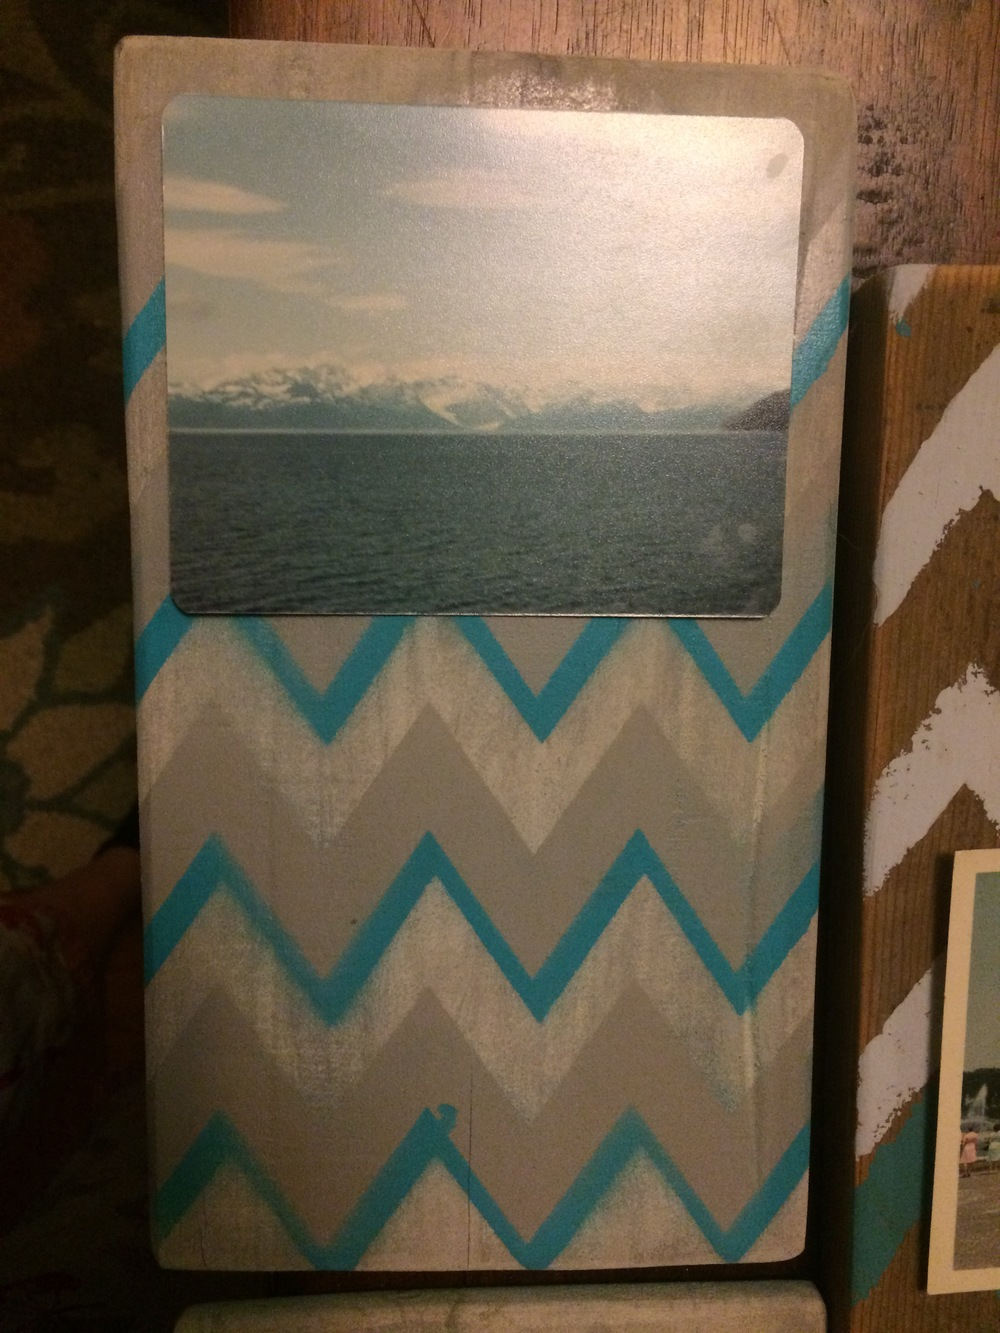 CHIC RECLAIMED WOOD PHOTO HOLDERS- MELT YOUR BFF'S HEART!..GET IT ICE BERGS.. MELT.. yeah HA.